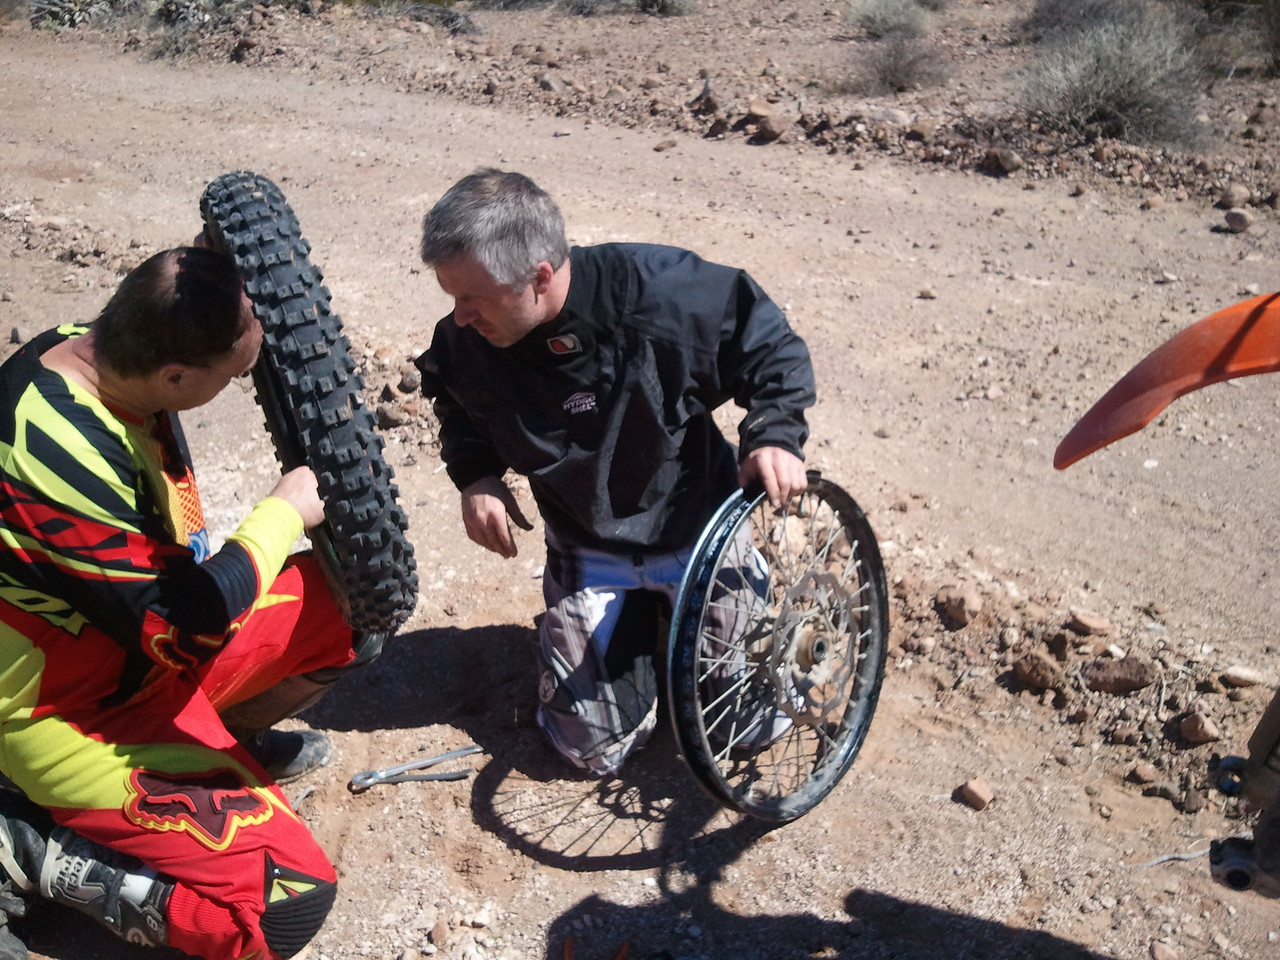 sara obtained a front flat. craig and I inspected the tire for cactus to prevent further flats.